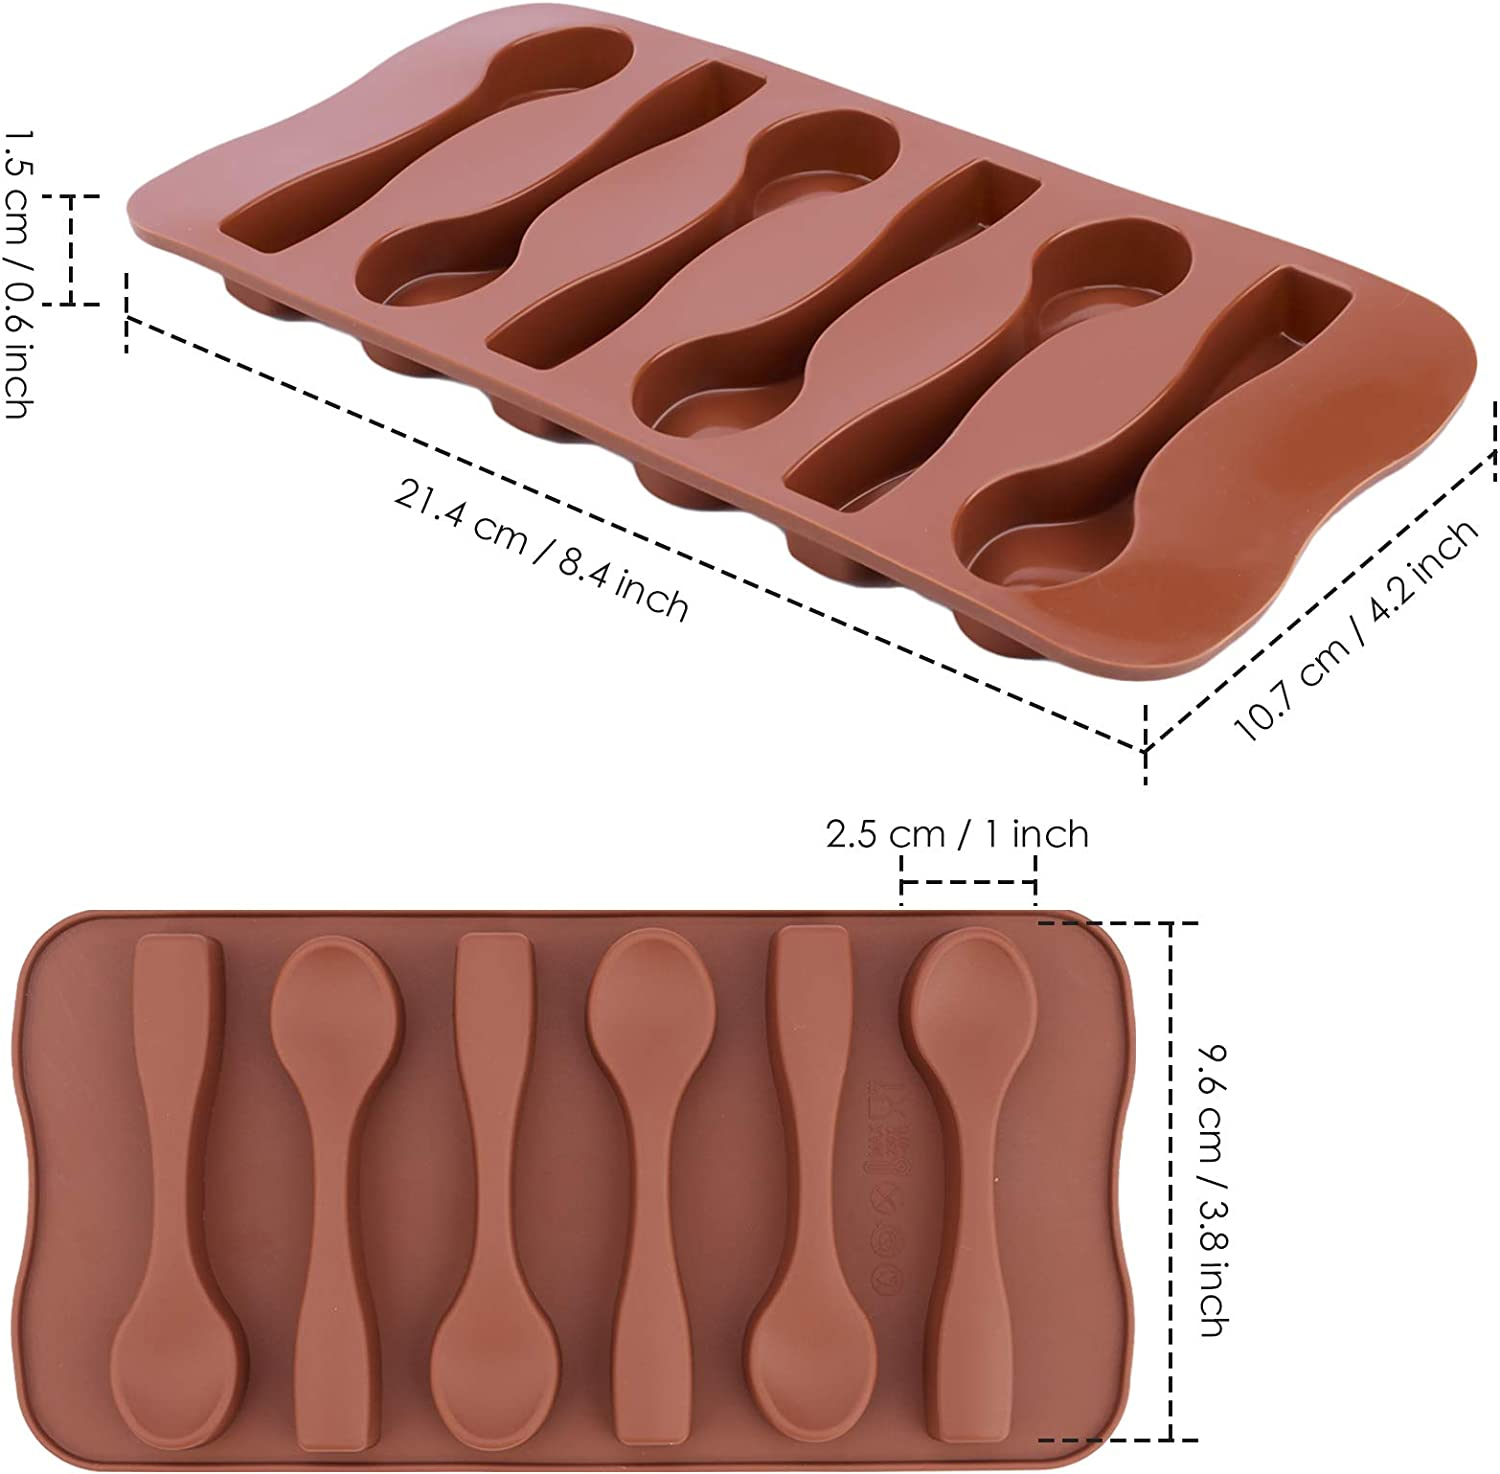 Ocmoiy Chocolate Spoon Mold 6 Pack Candy Cane Spoons Mold, Food Grade Silicone Molds for Baking Chocolate Candy Spoons, Peppermint Candy, Hot Cocoa & Coffee Butterscotch, Caramel Stirring Spoons